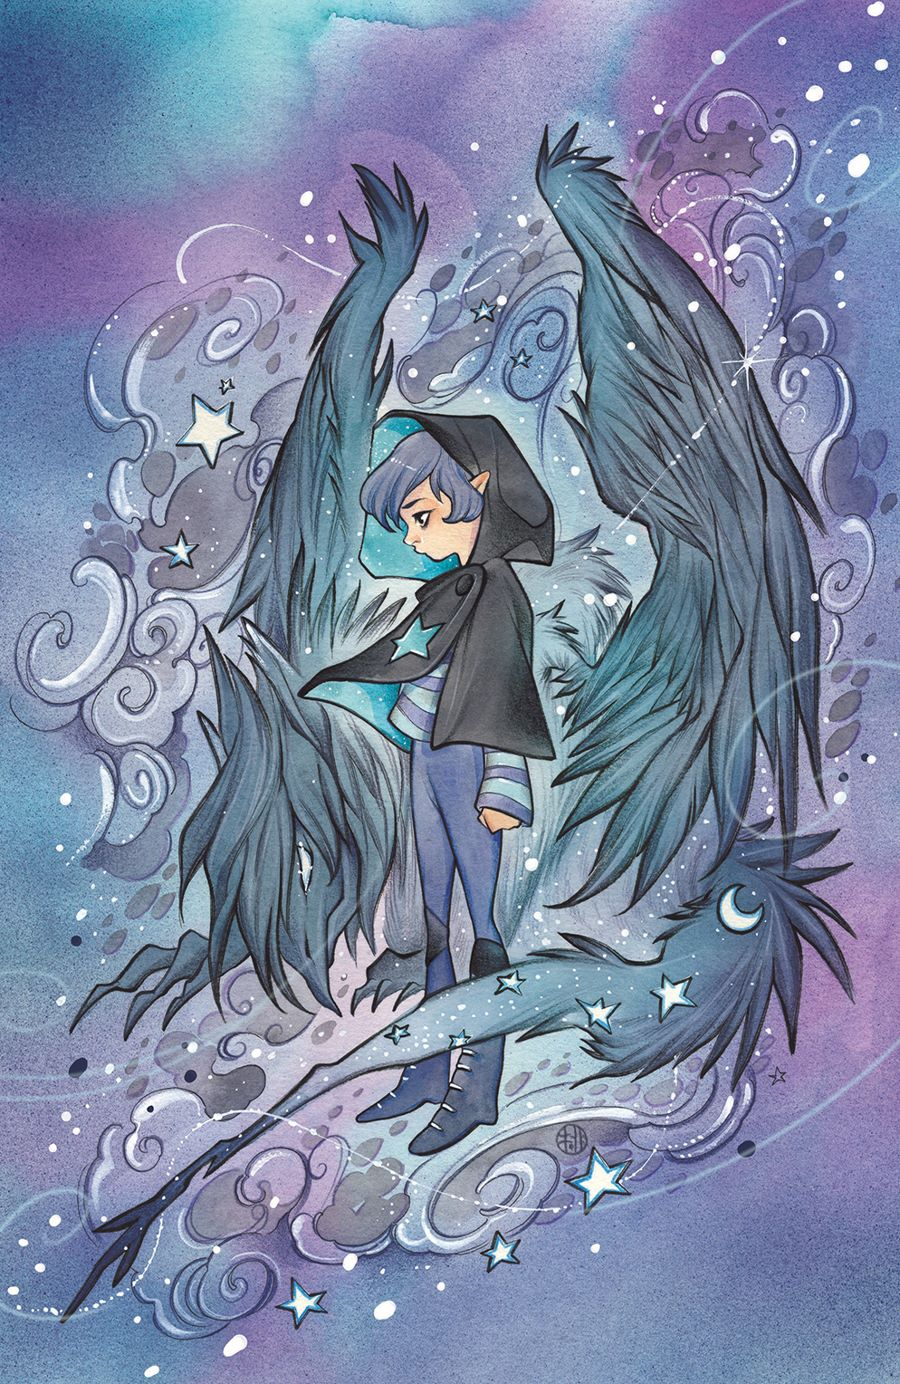 Wynd_002_Cover_Variant ComicList Previews: WYND #2